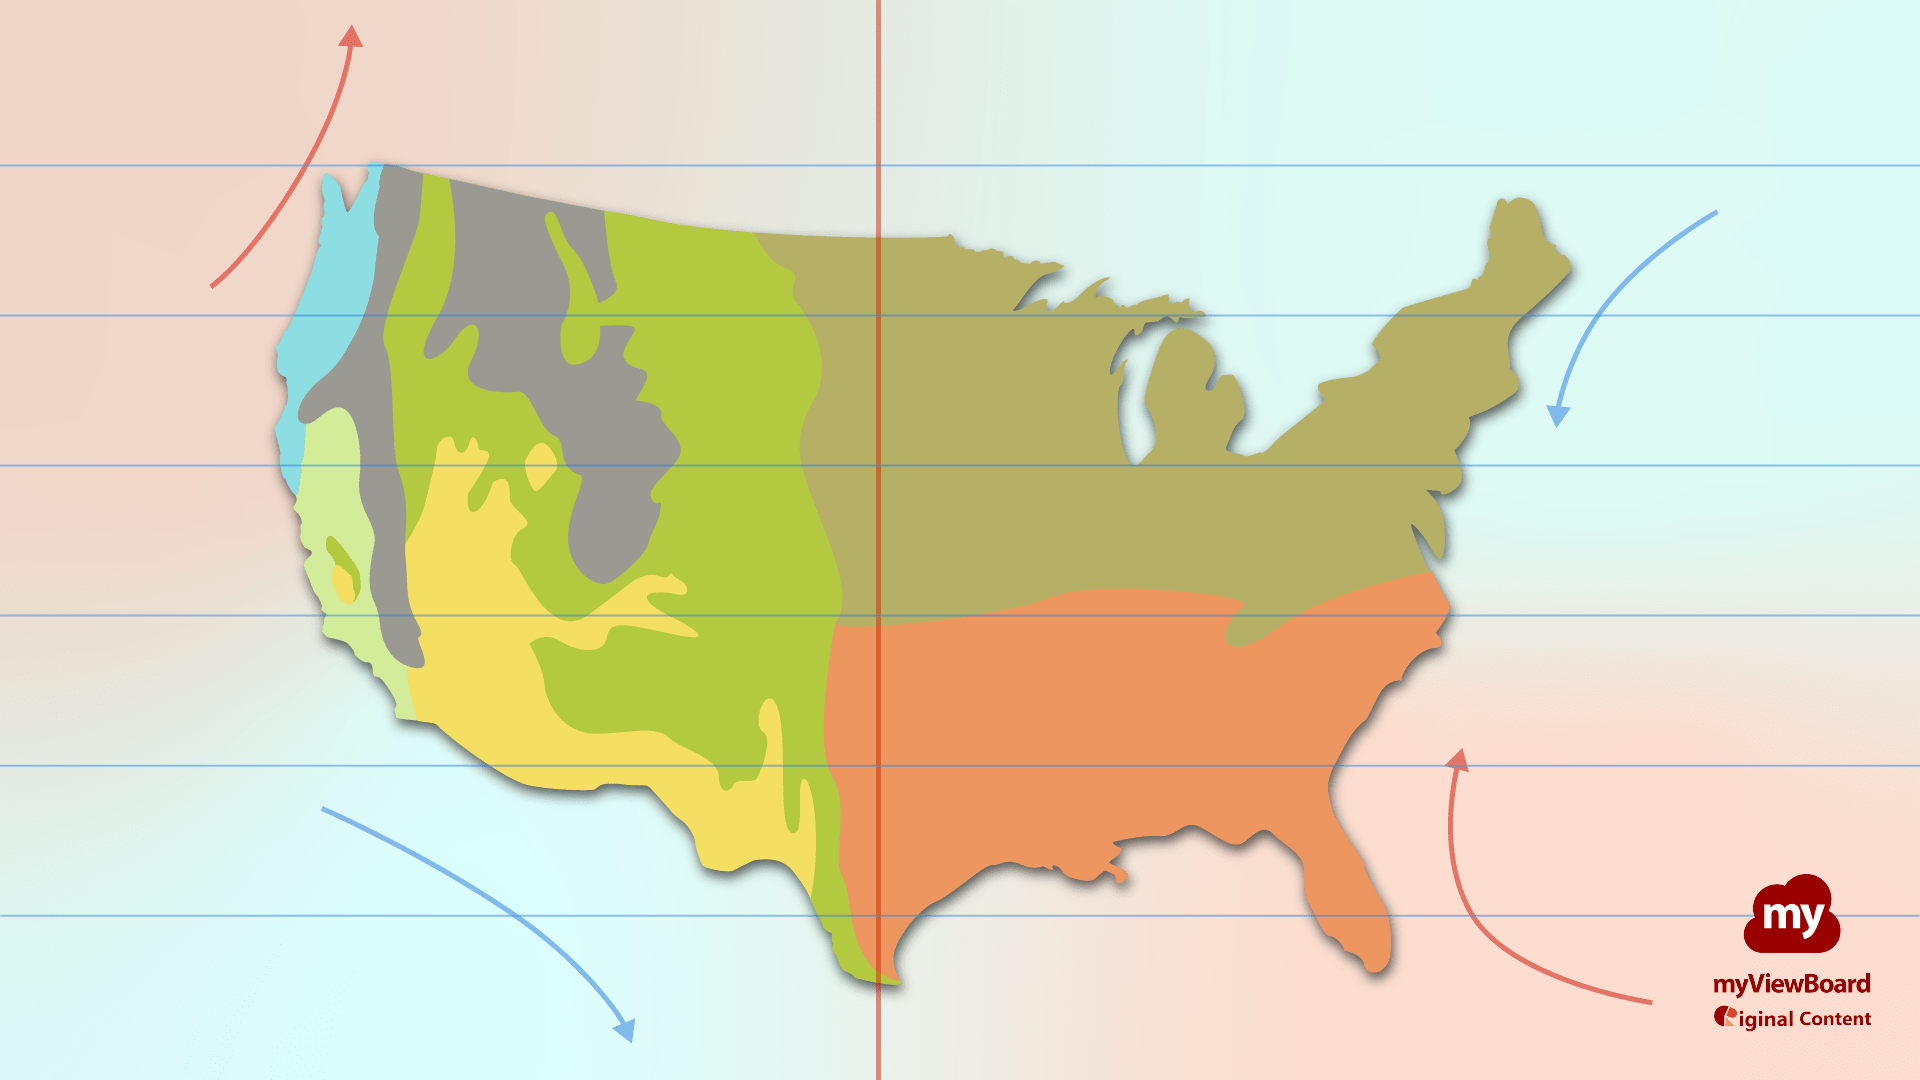 OCBnew thumbnail mixed map of the United States logo Full HD.png